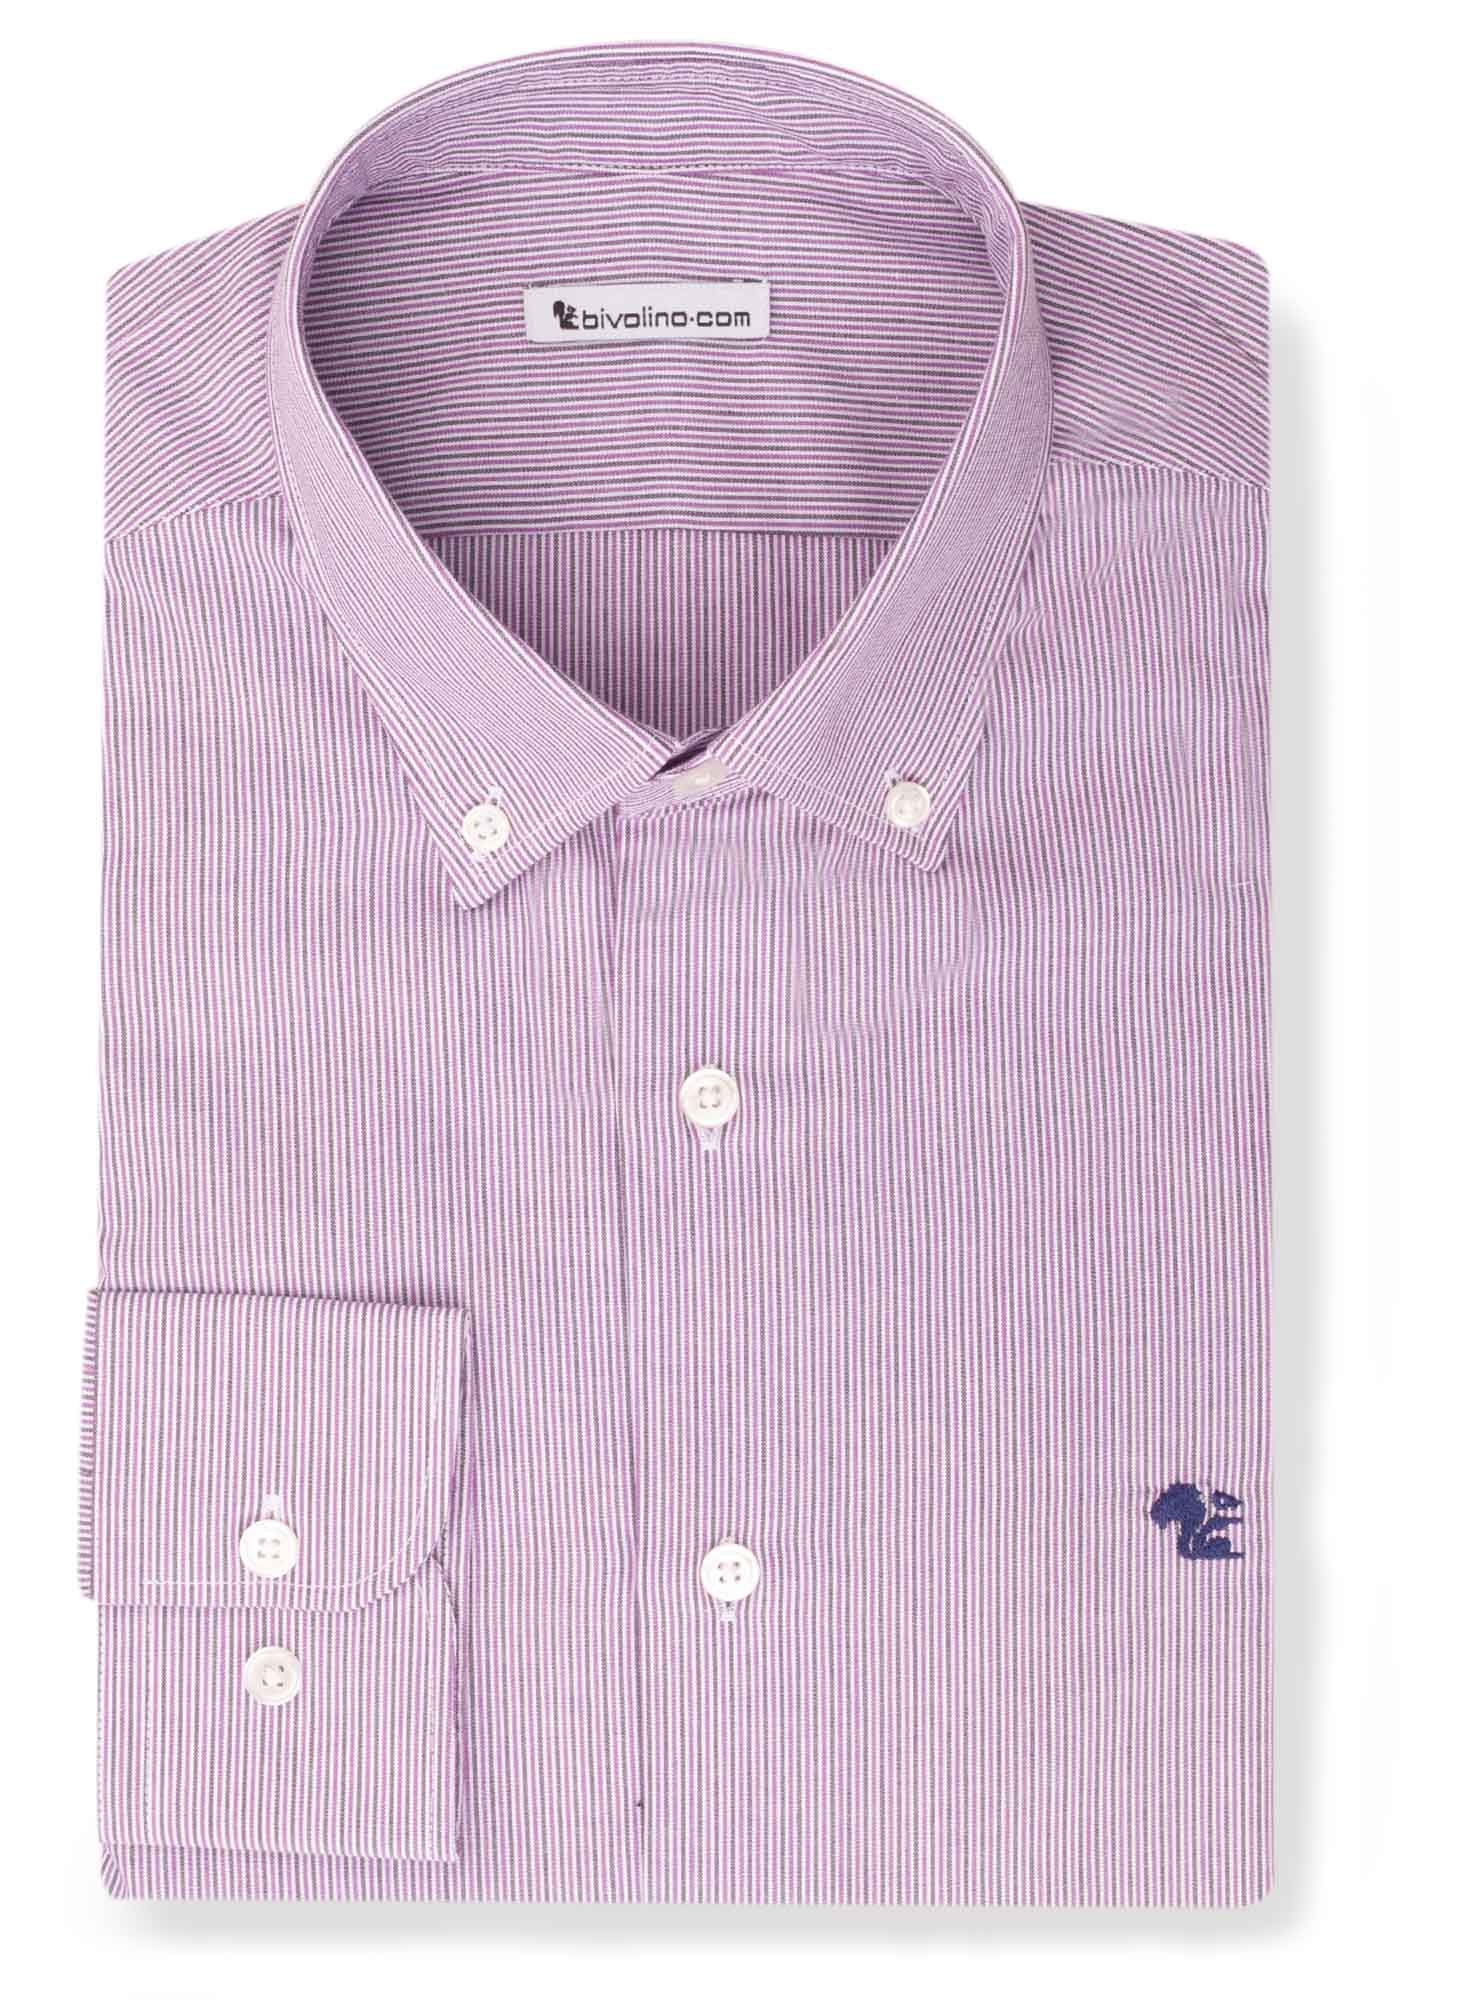 BOLICHI - Poplin purple striped shirt - Bolis 2